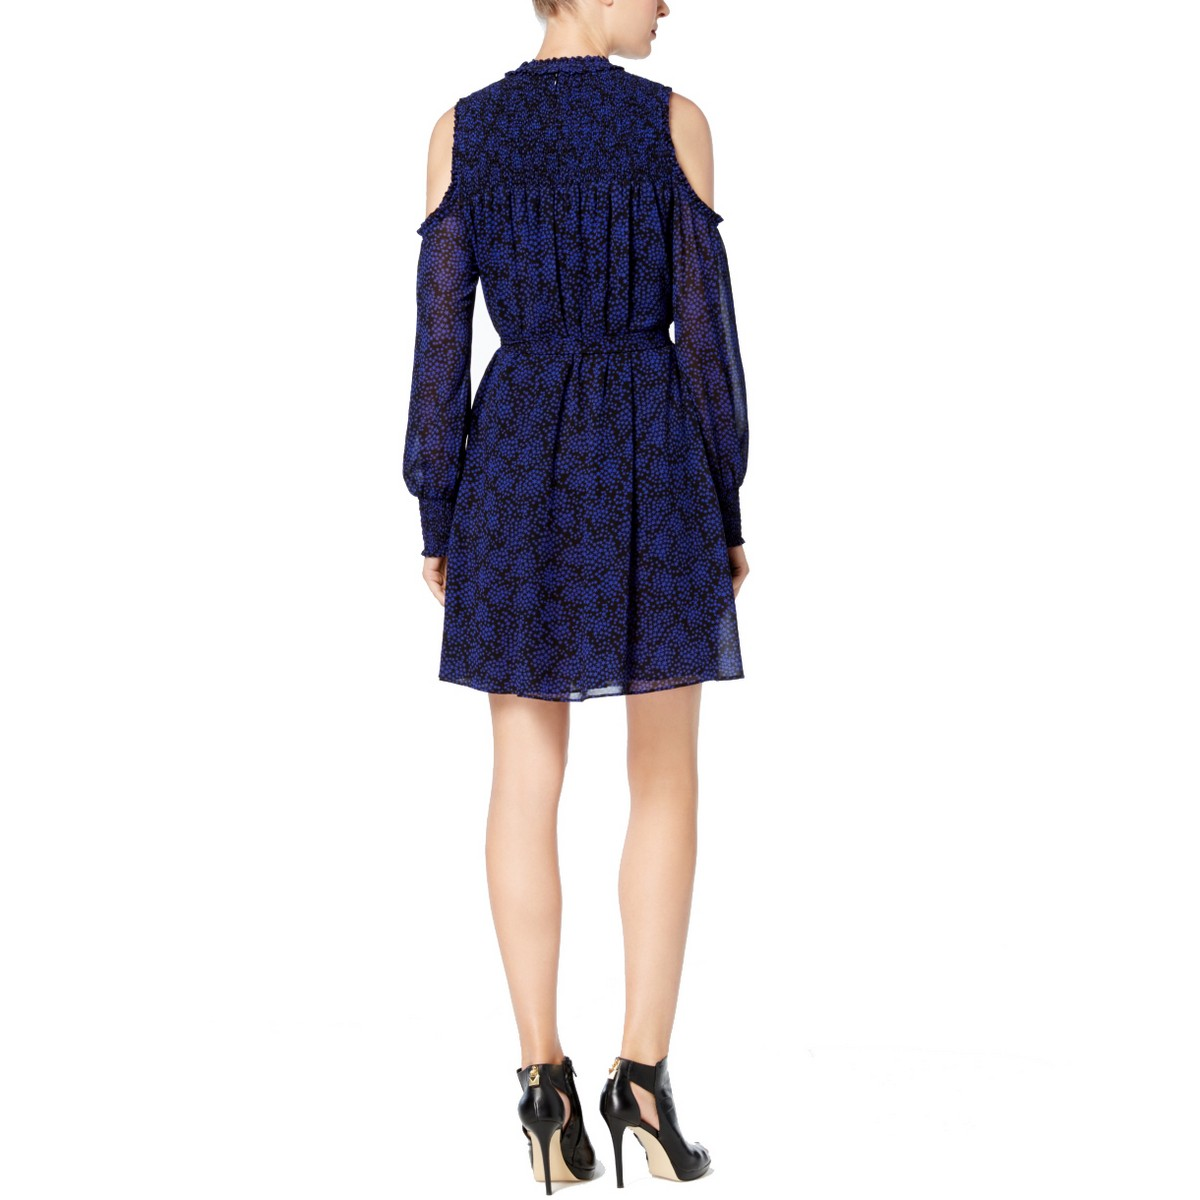 MICHAEL-KORS-Women-039-s-Stars-Print-Smocked-Cold-shoulder-Fit-amp-Flare-Dress-TEDO thumbnail 4